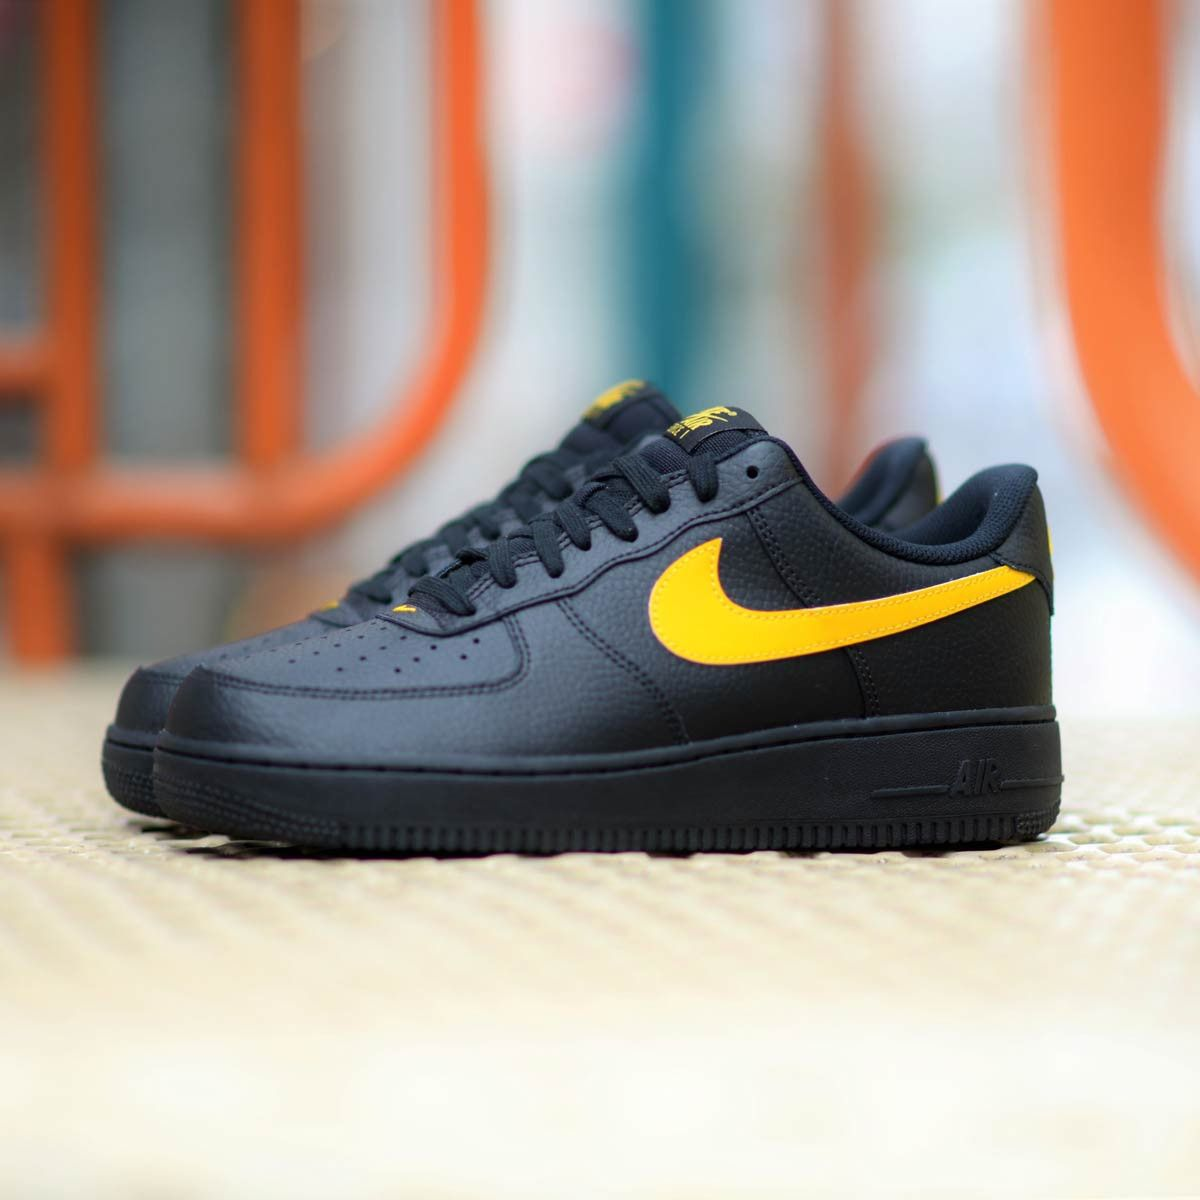 72d98d94a30b NIKE AIR FORCE 1 VLONE LOW BLACK YELLOW SWISH AA4083 002